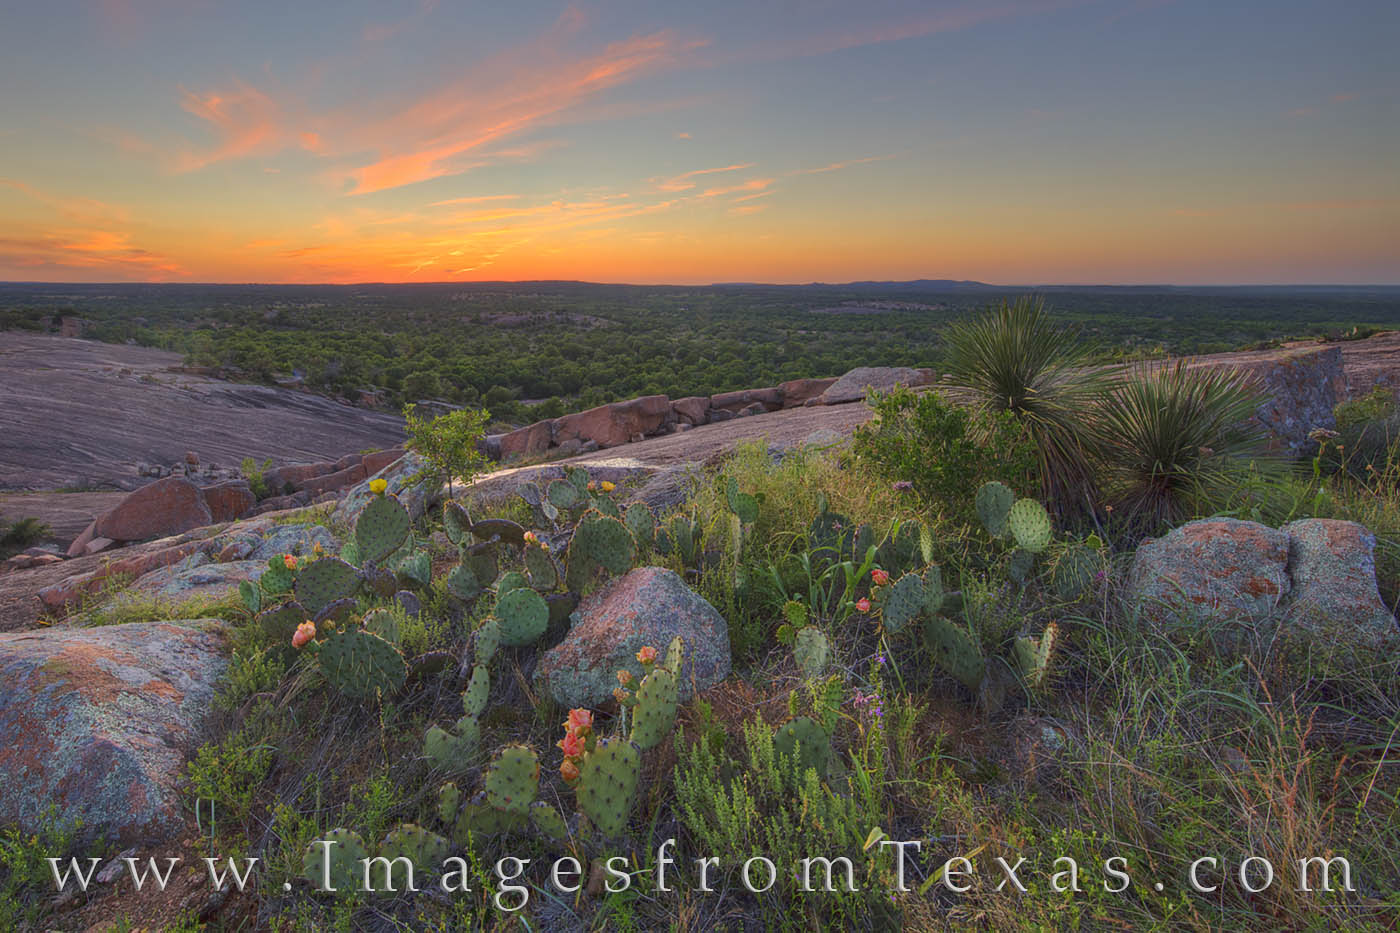 enchanted rock, prickly pear, blooms, texas wildflowers, texas hill country, little rock, cacti, cacuts, evening, texas sunset, May, spring, photo